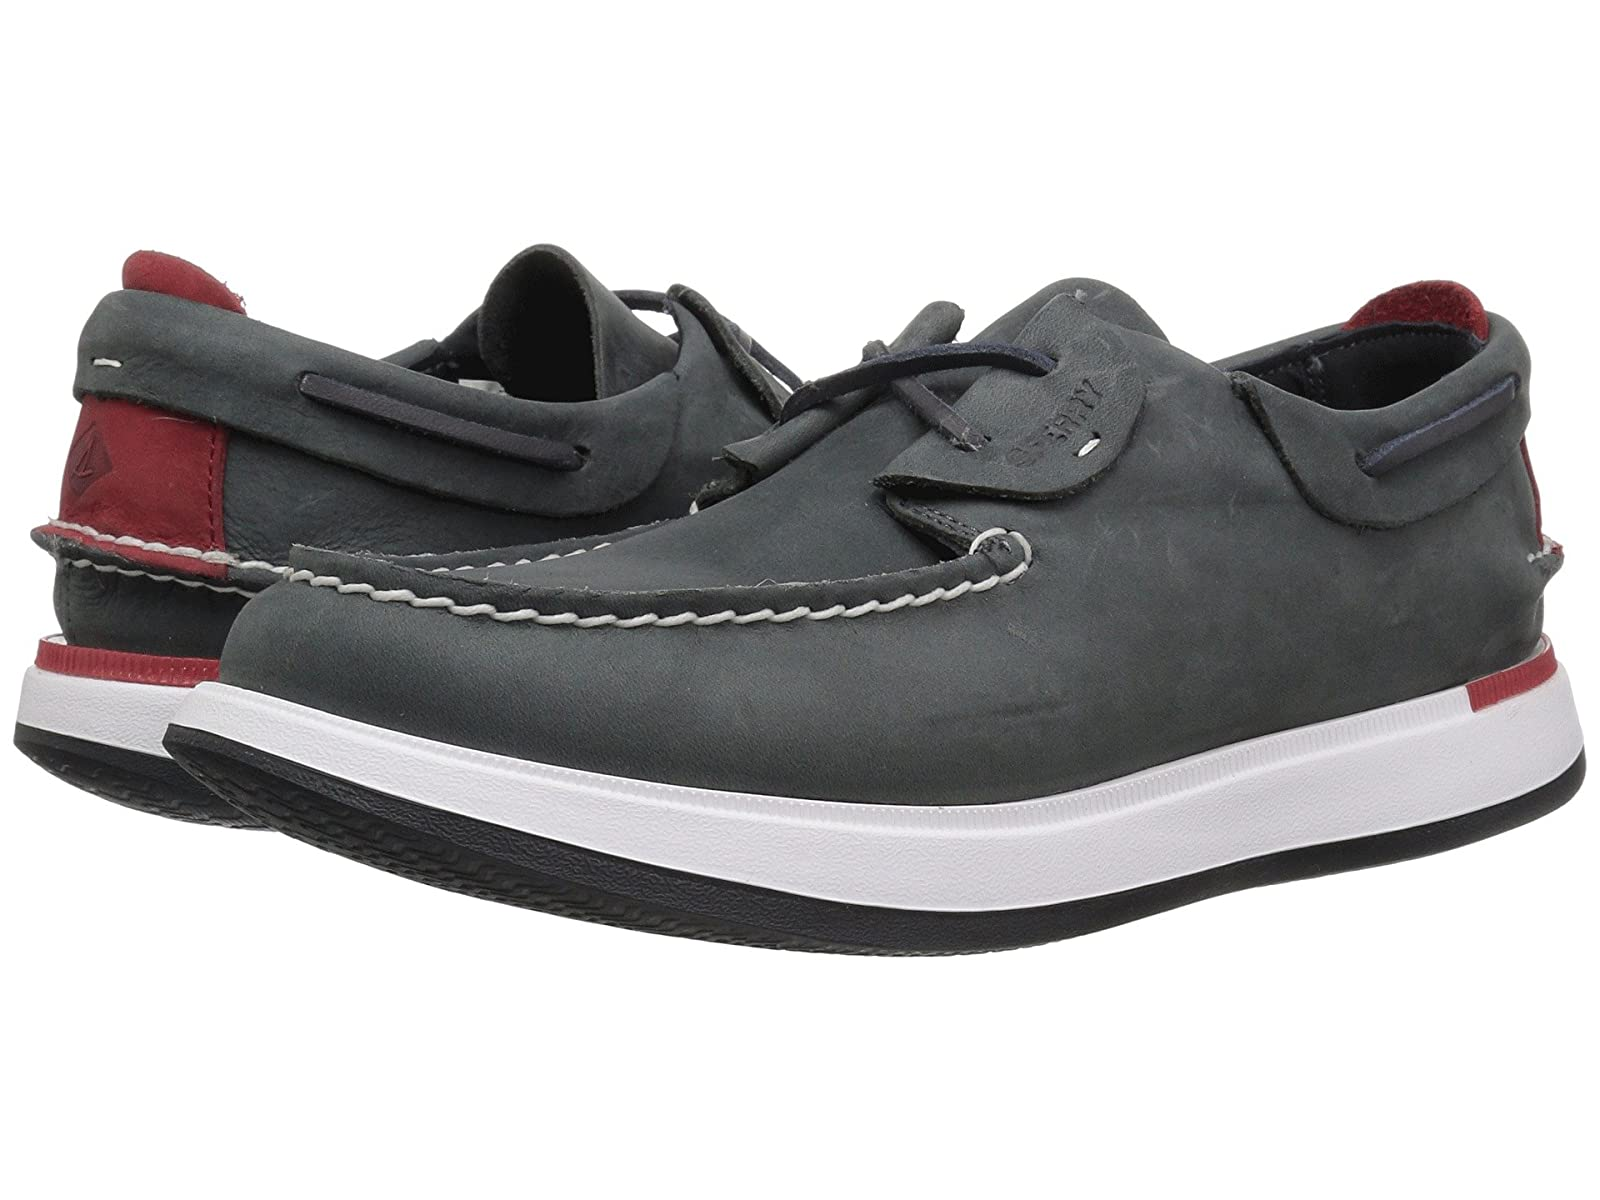 Sperry Caspian Boat LeatherSelling fashionable and eye-catching shoes